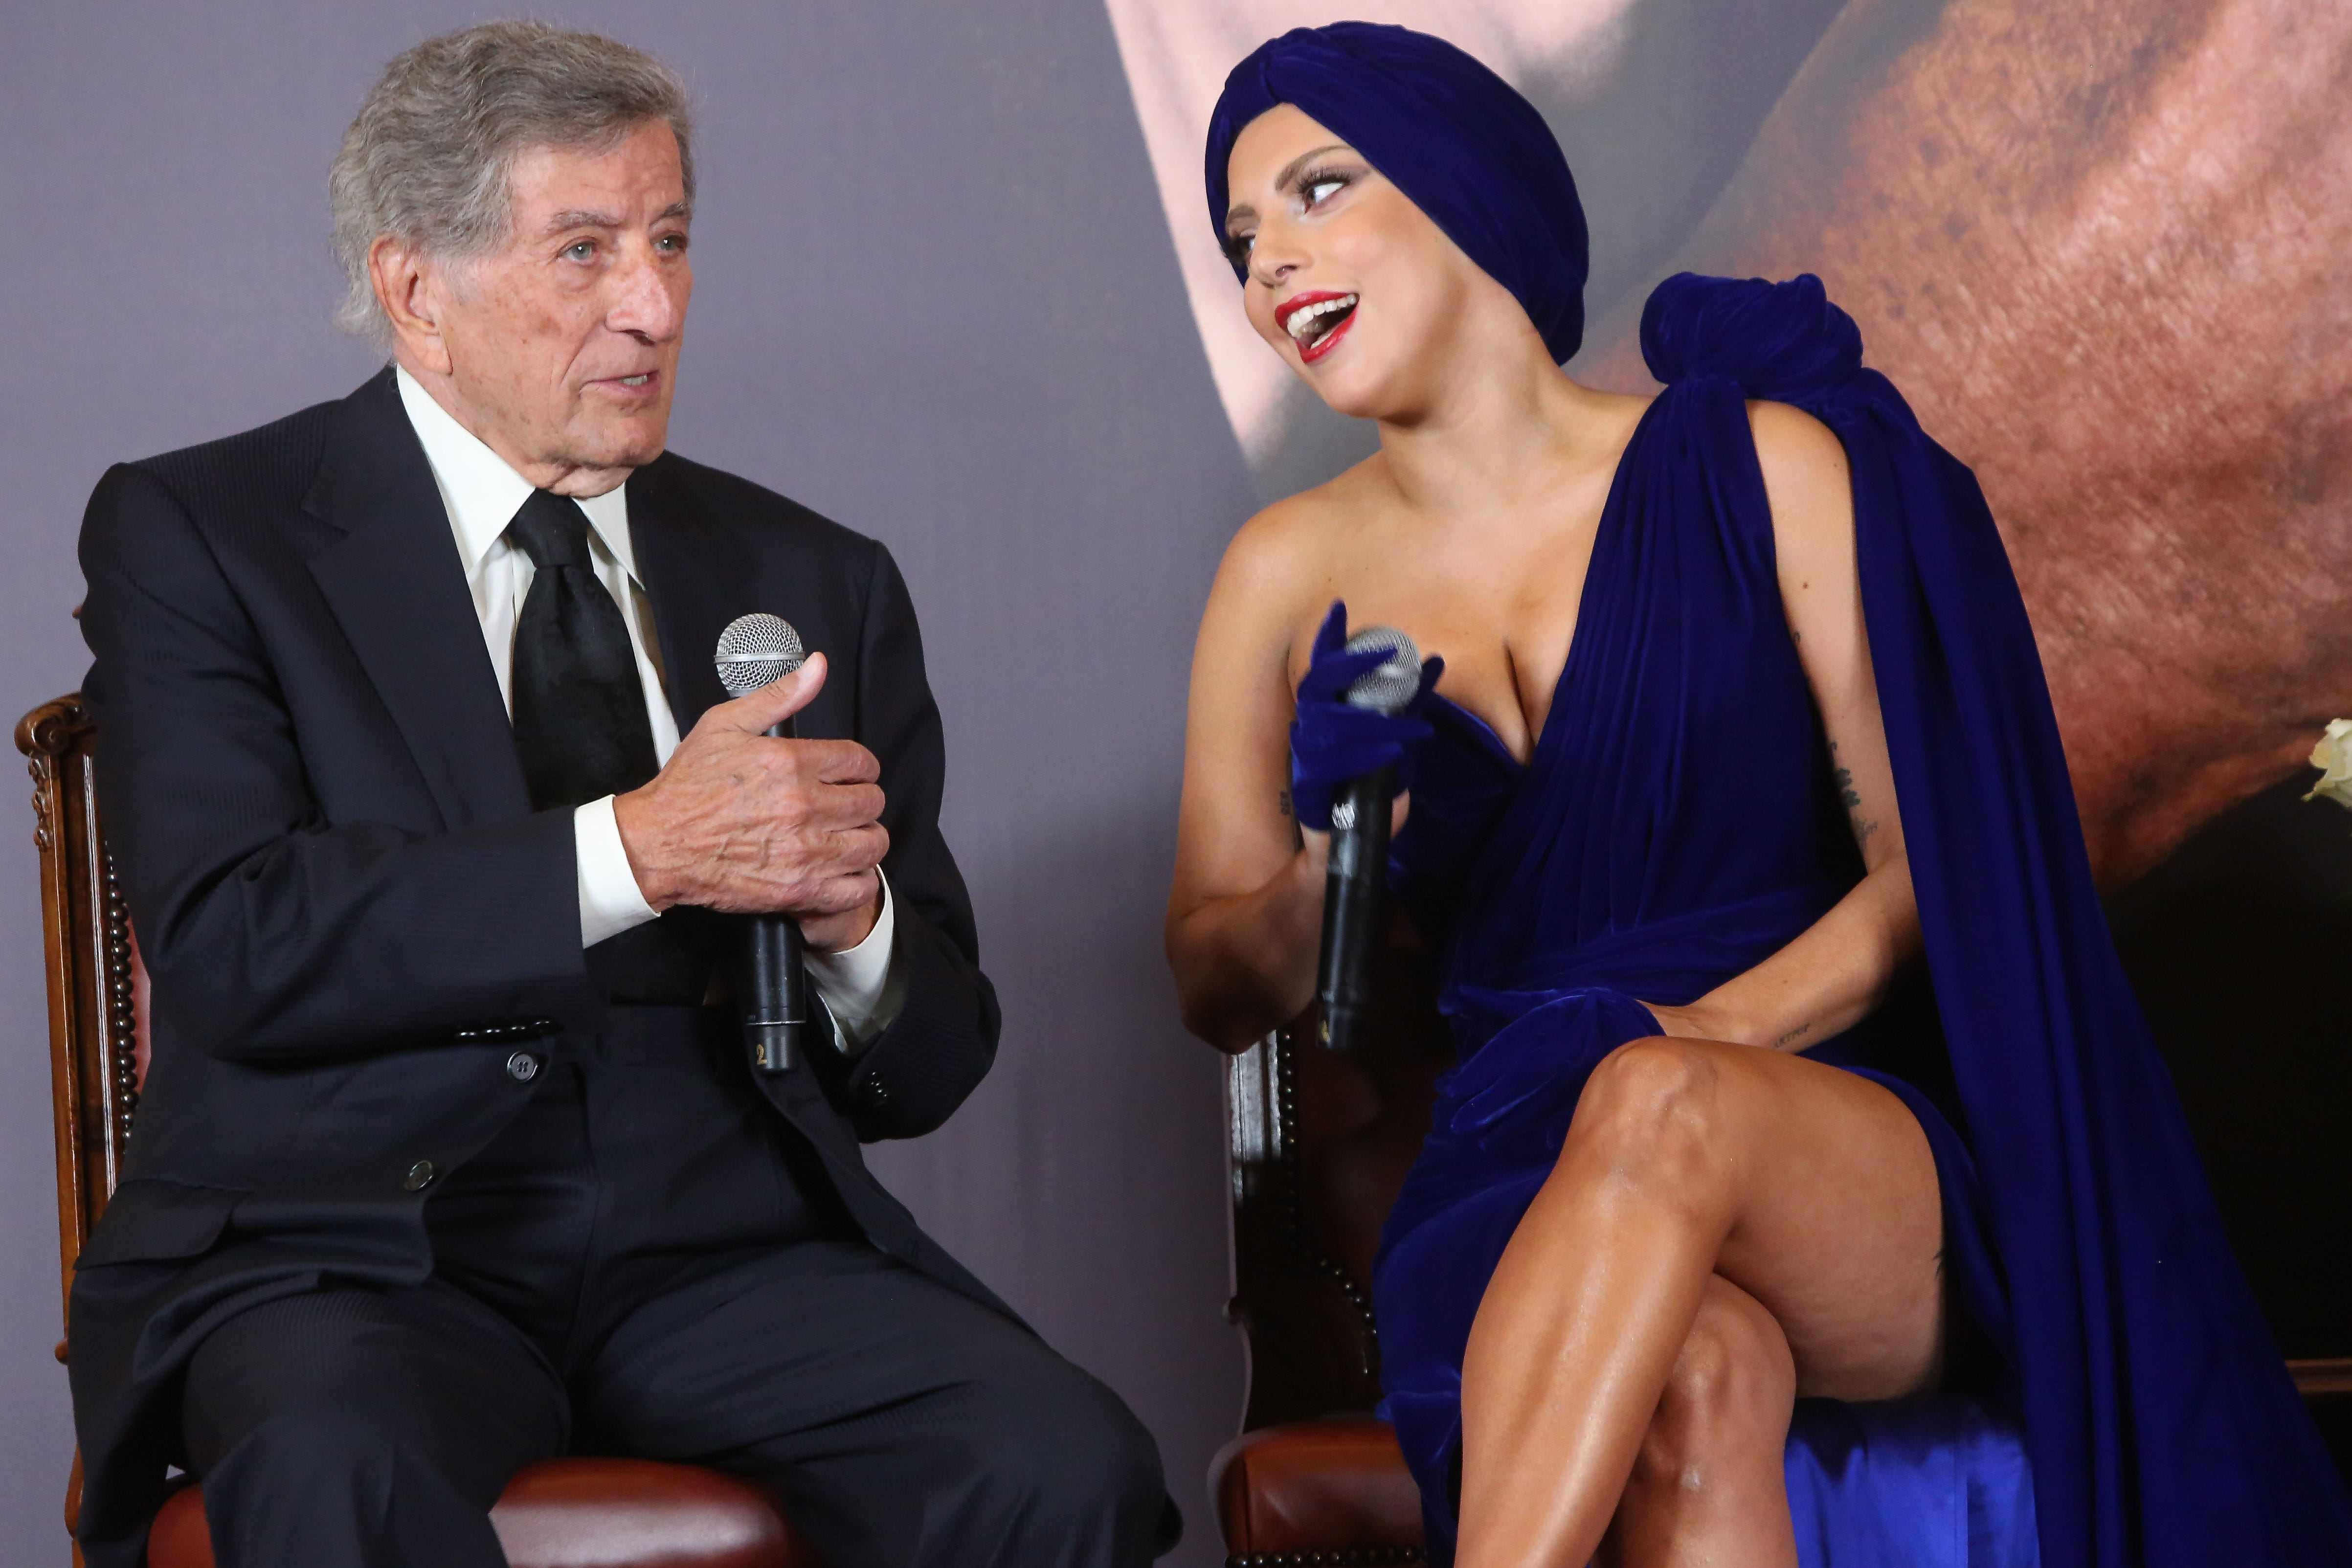 'He's my musical companion': Lady Gaga salutes, duets with Tony Bennett at emotional New York show